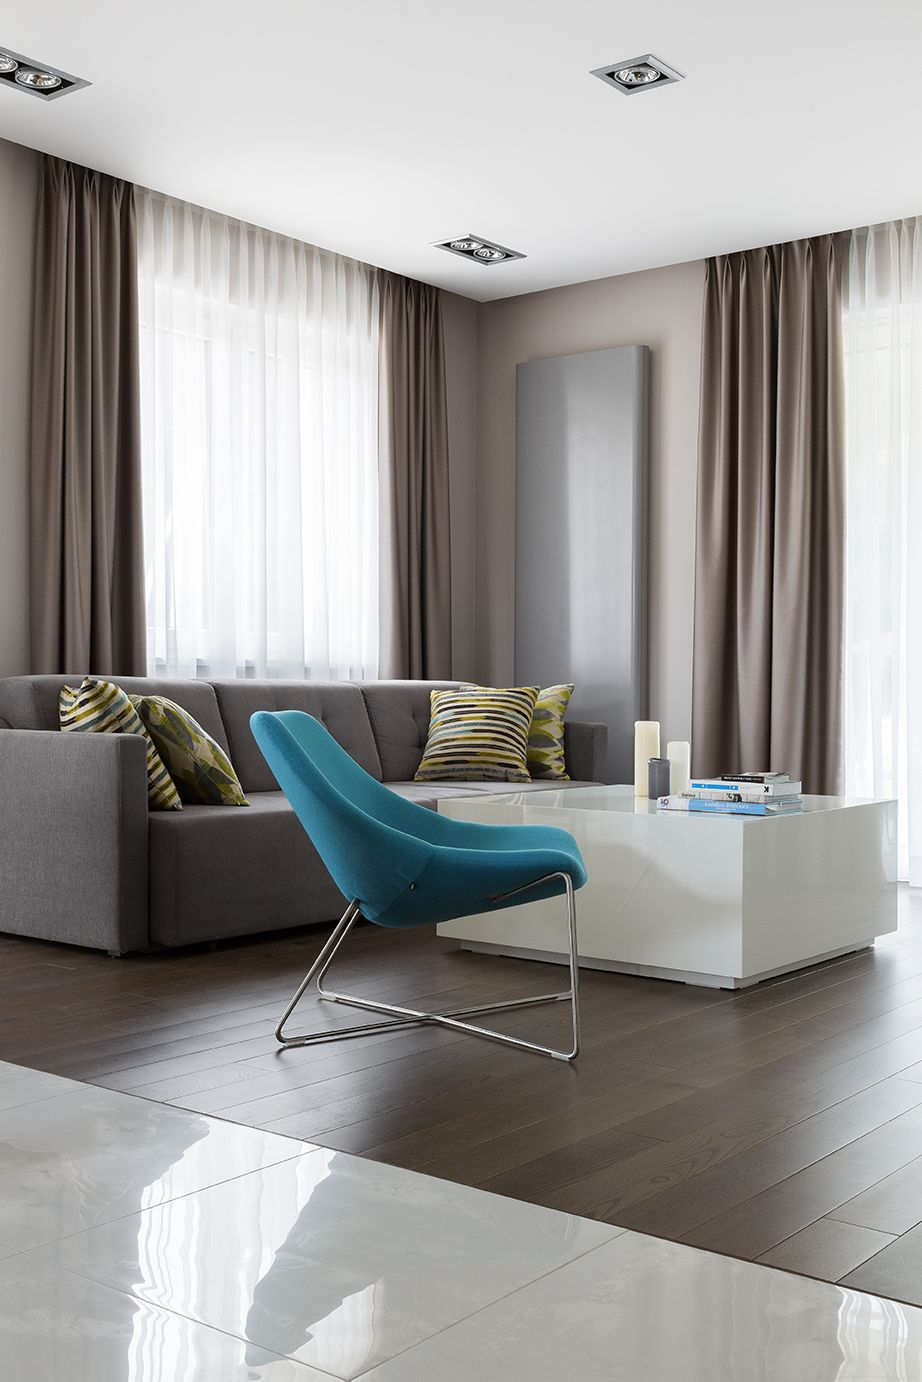 Colourful Modern Living Room Turquoise Armchair White Coffee Table Grey